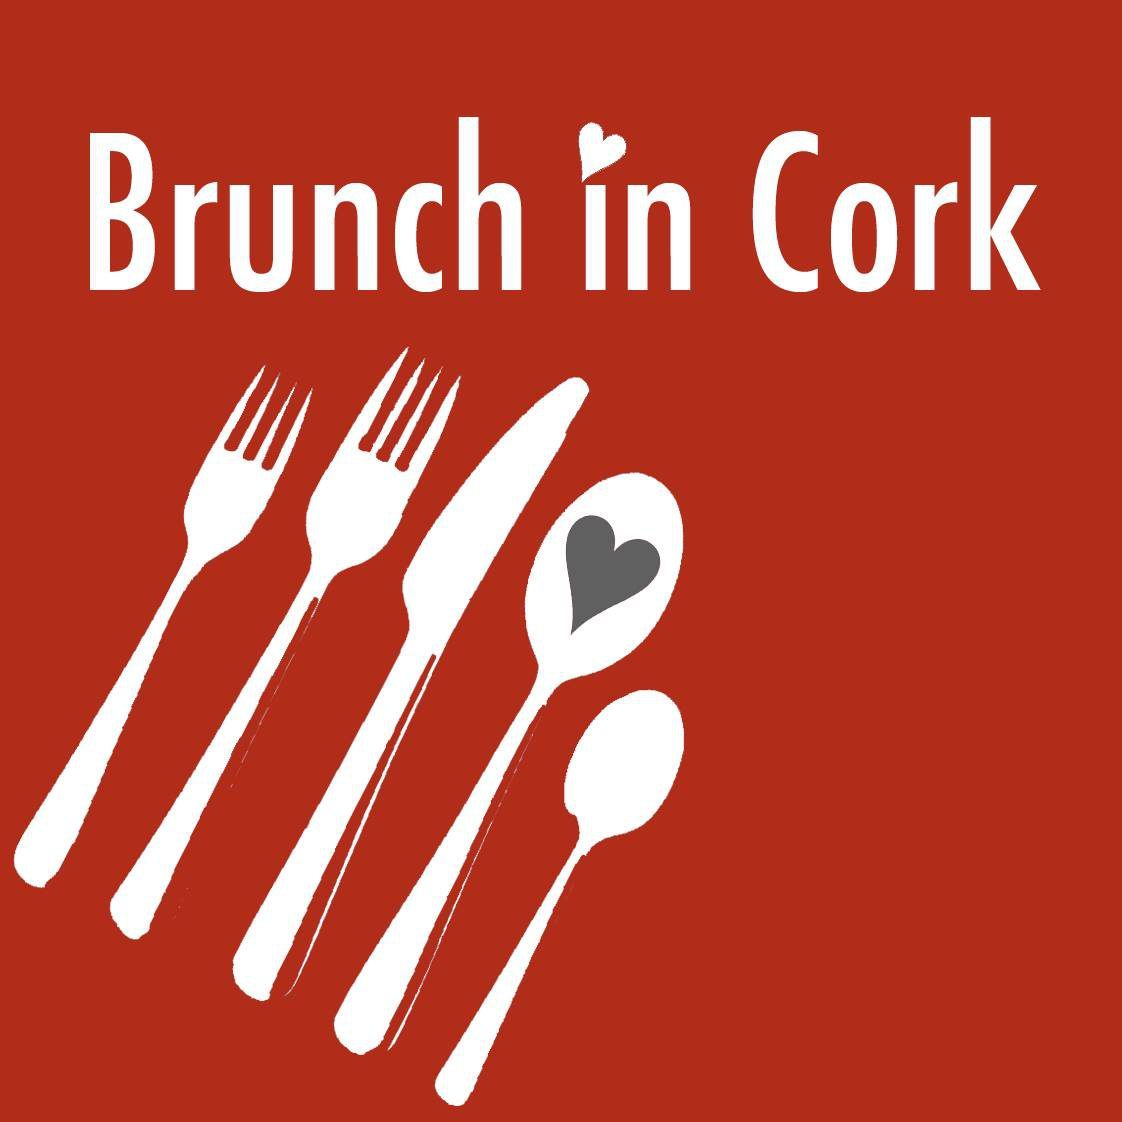 Brunch & Cork Food